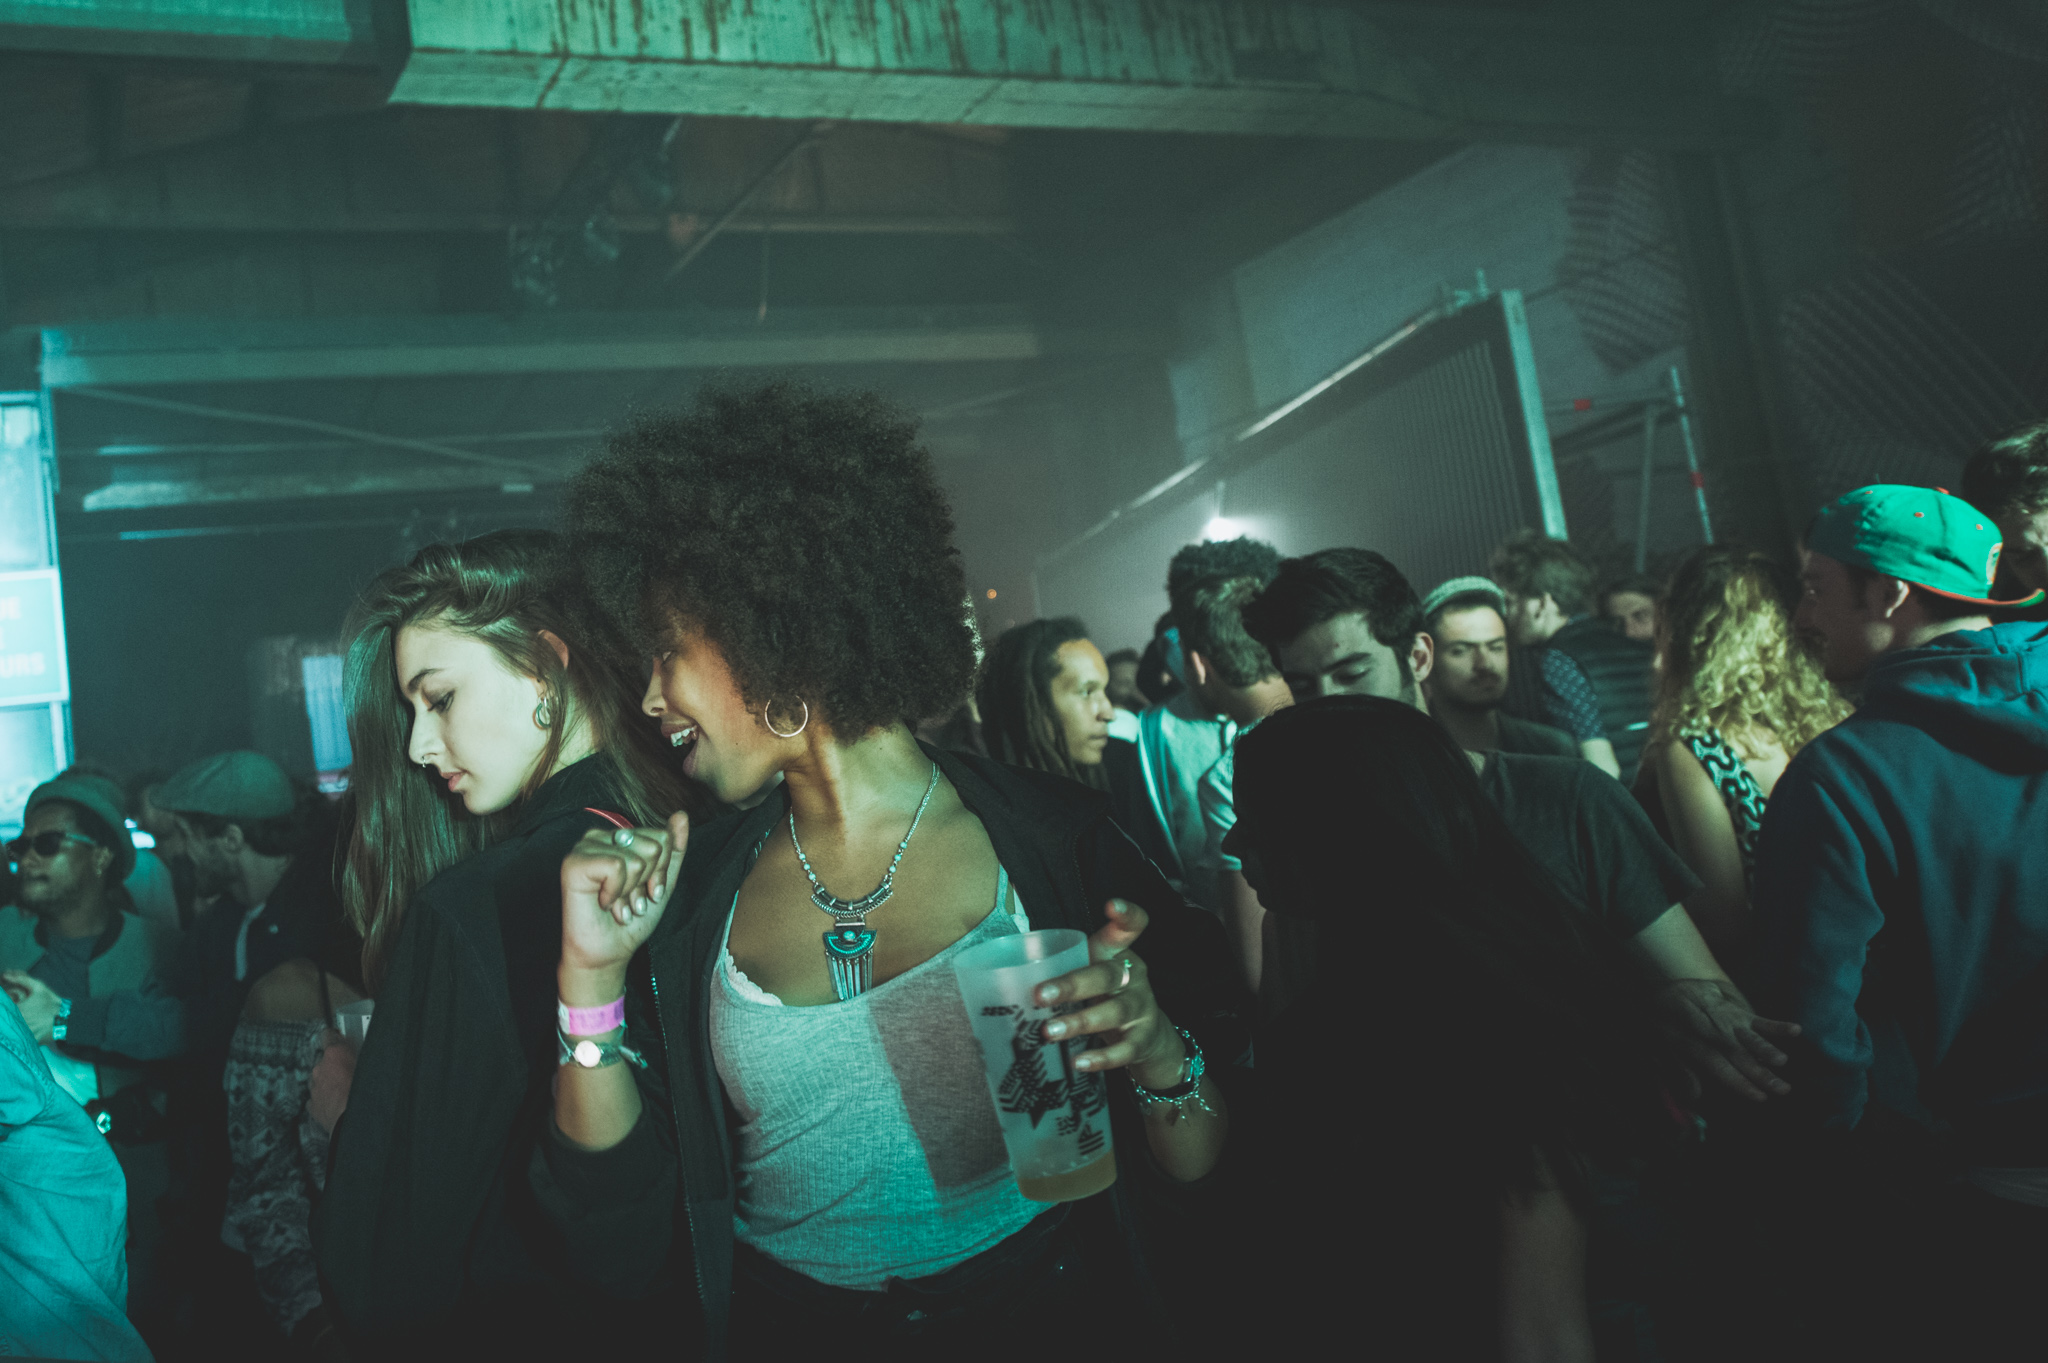 nuits sonores, festival, music, live, electro, rock, reportage, reportage live, photo, laurie diaz, photographe, lumière, light, studio le carre, marche gare, extra, lyon, femmes, portrait, afro, cheveu, fete, danse, dj, laurie Diaz photographe reportage live lyon, event, evenentiel, festival, scene